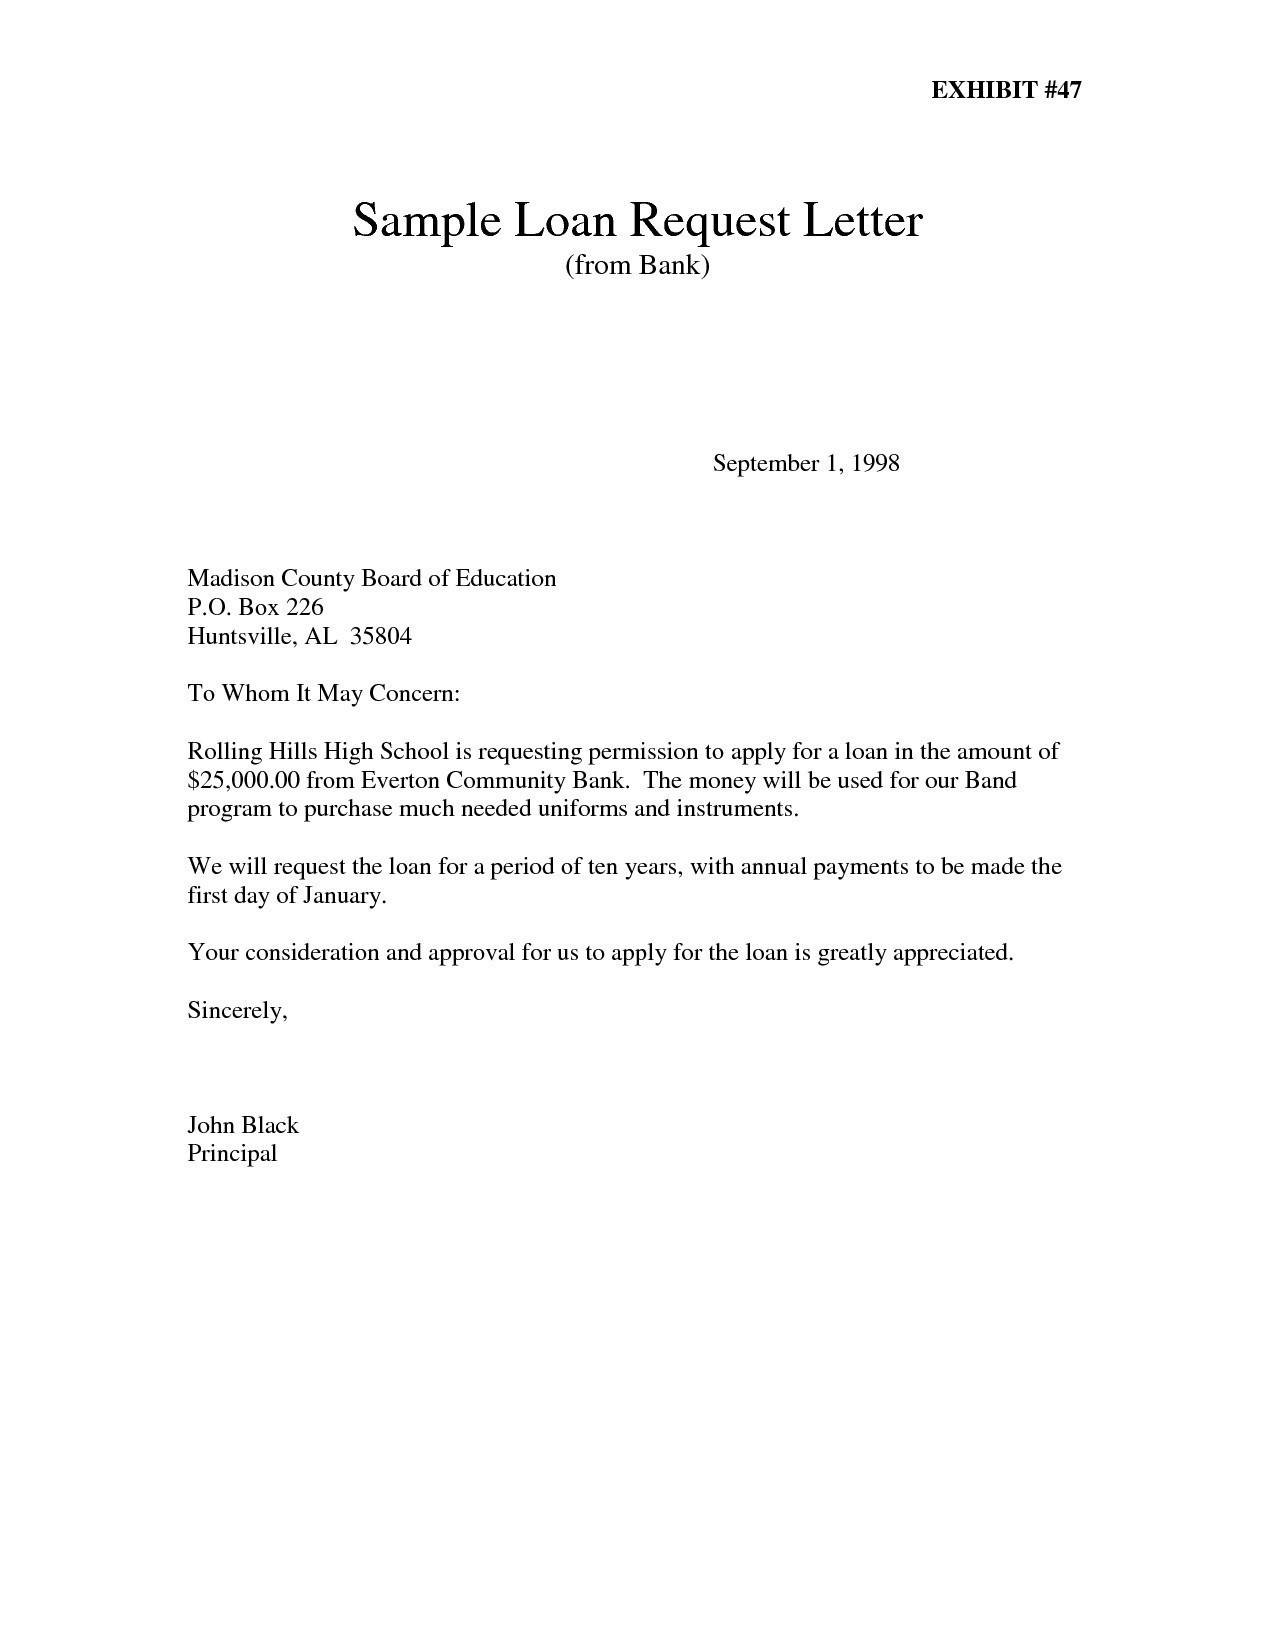 Loan Letter Sample To Bank